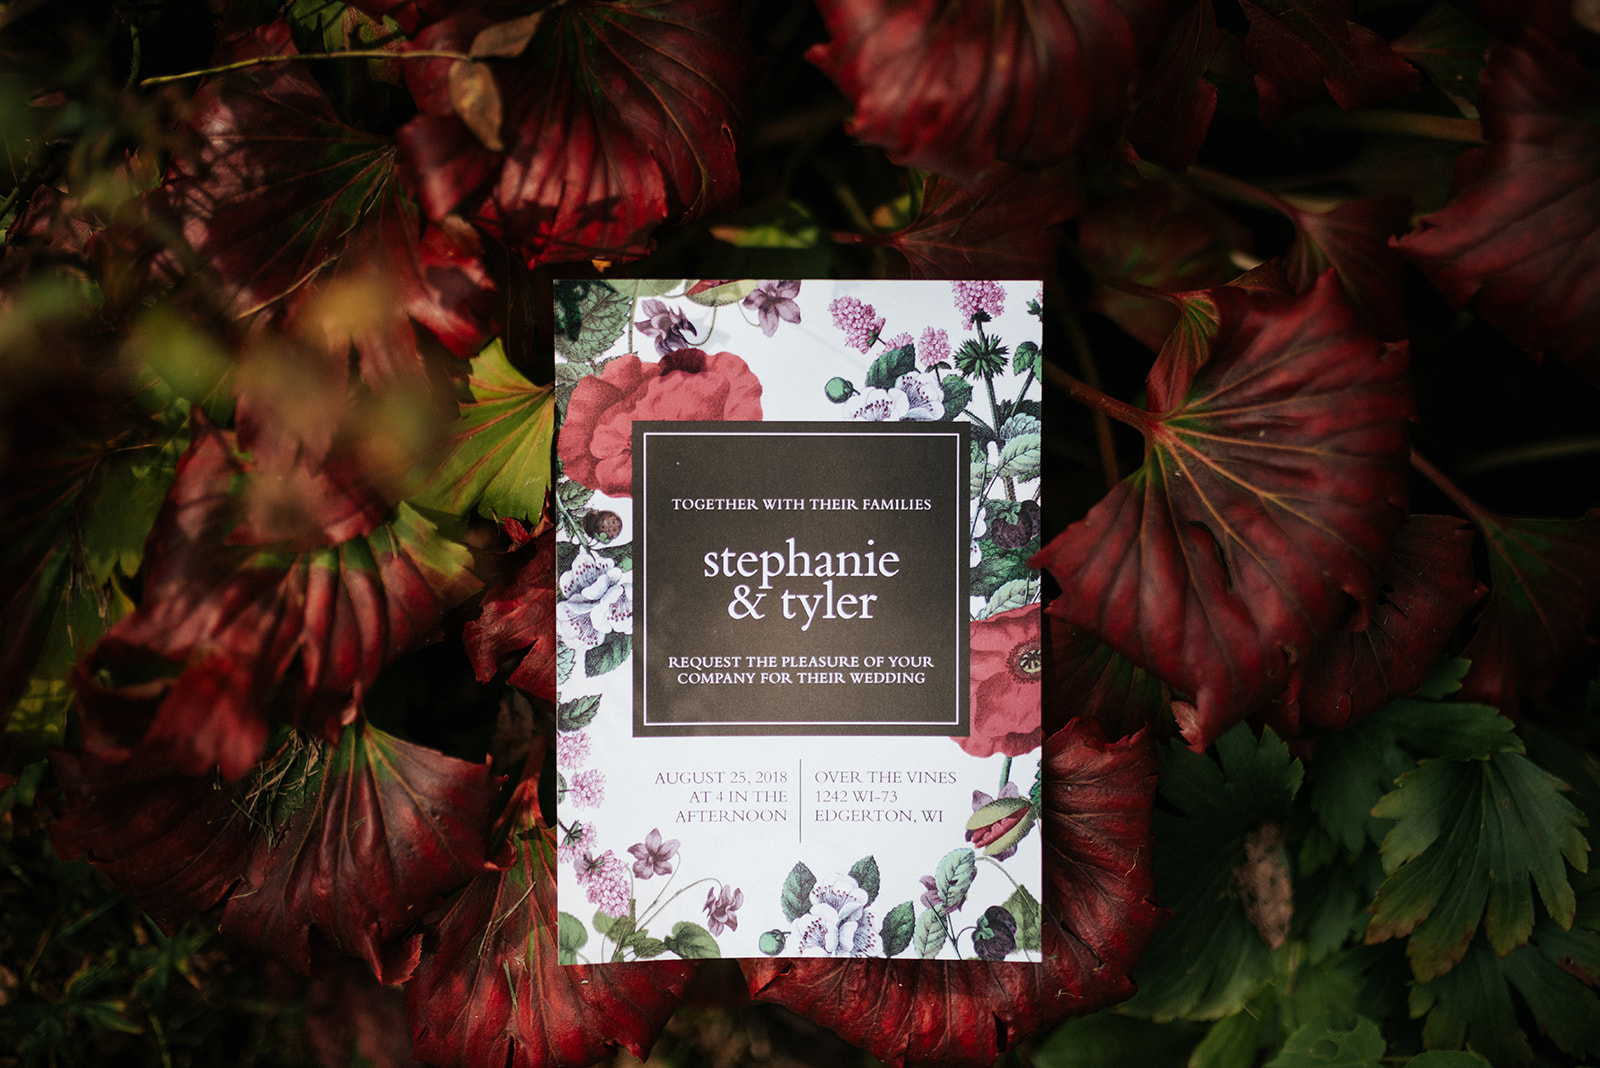 overthevineswisconsinwedding_0002.jpg